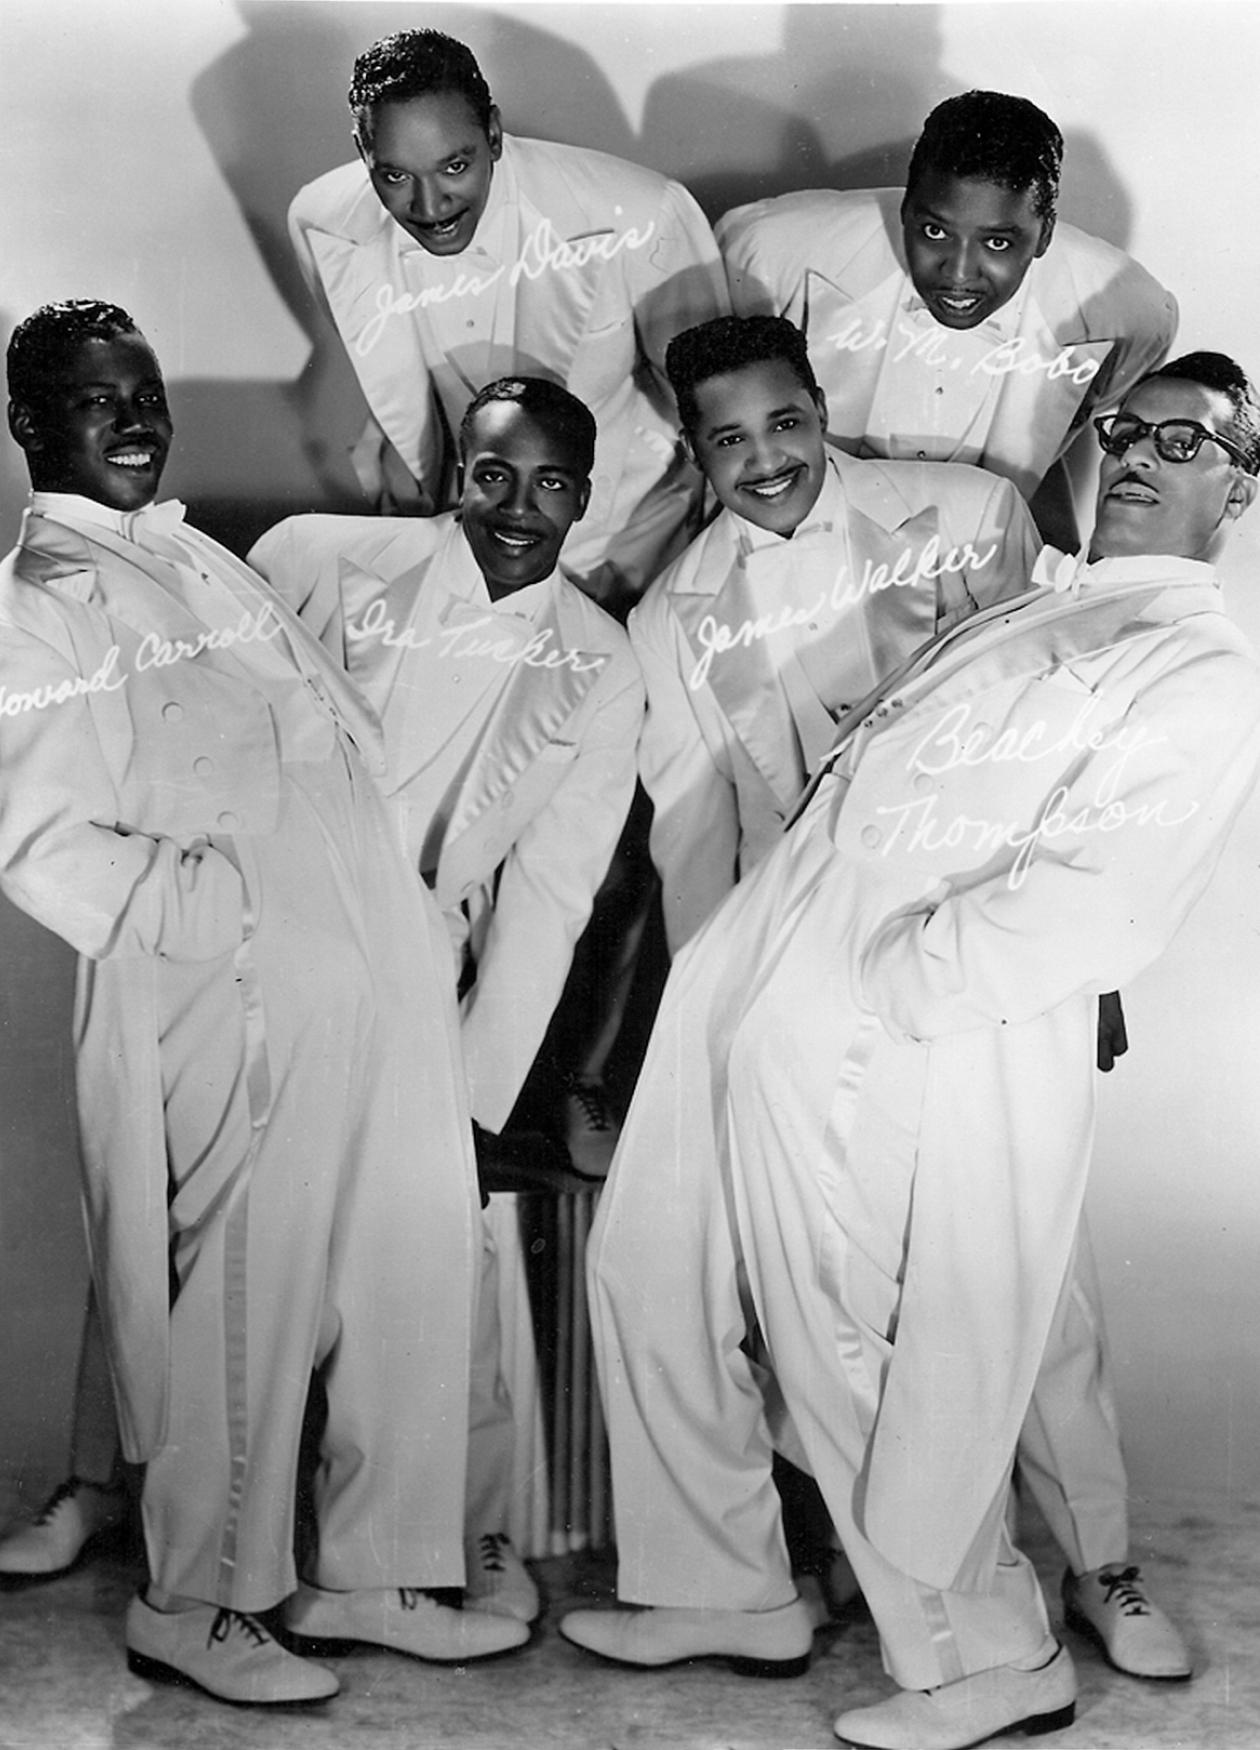 Black and white photo of a musical group wearing white tuxedos and posing for a photograph at irregular angles.